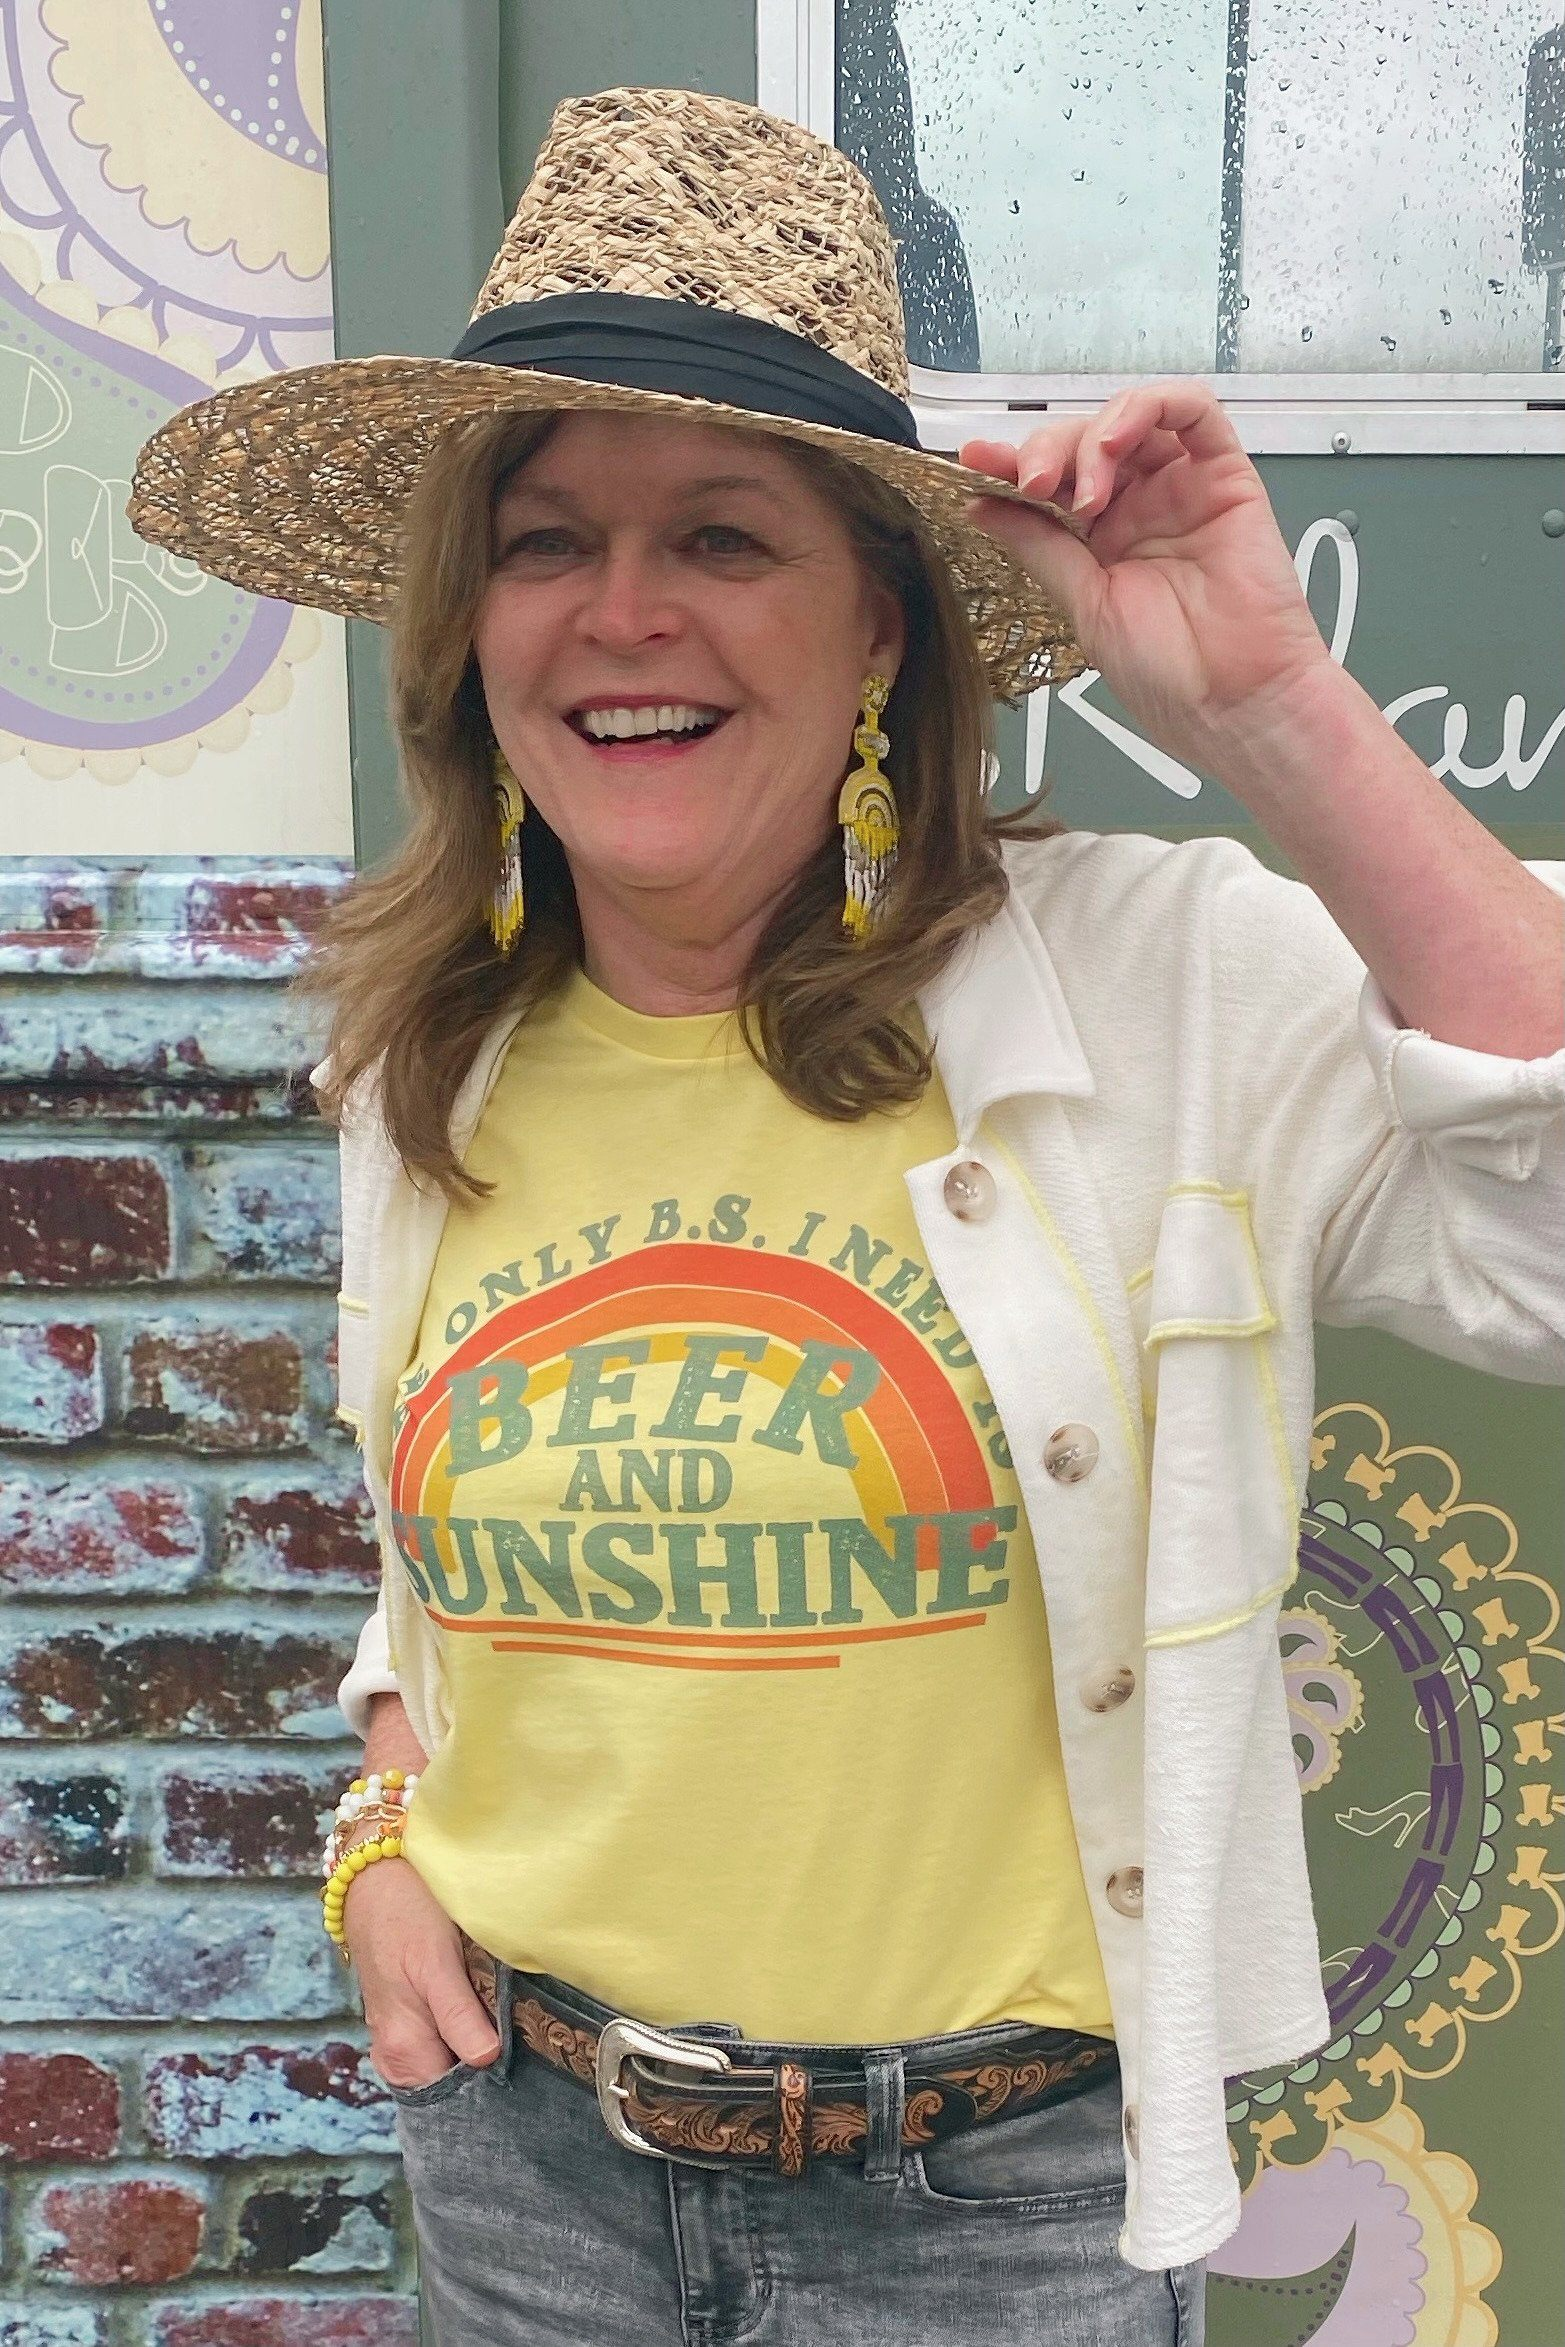 Beer and Sunshine Tee MISSY BASIC KNIT KISSED APPAREL